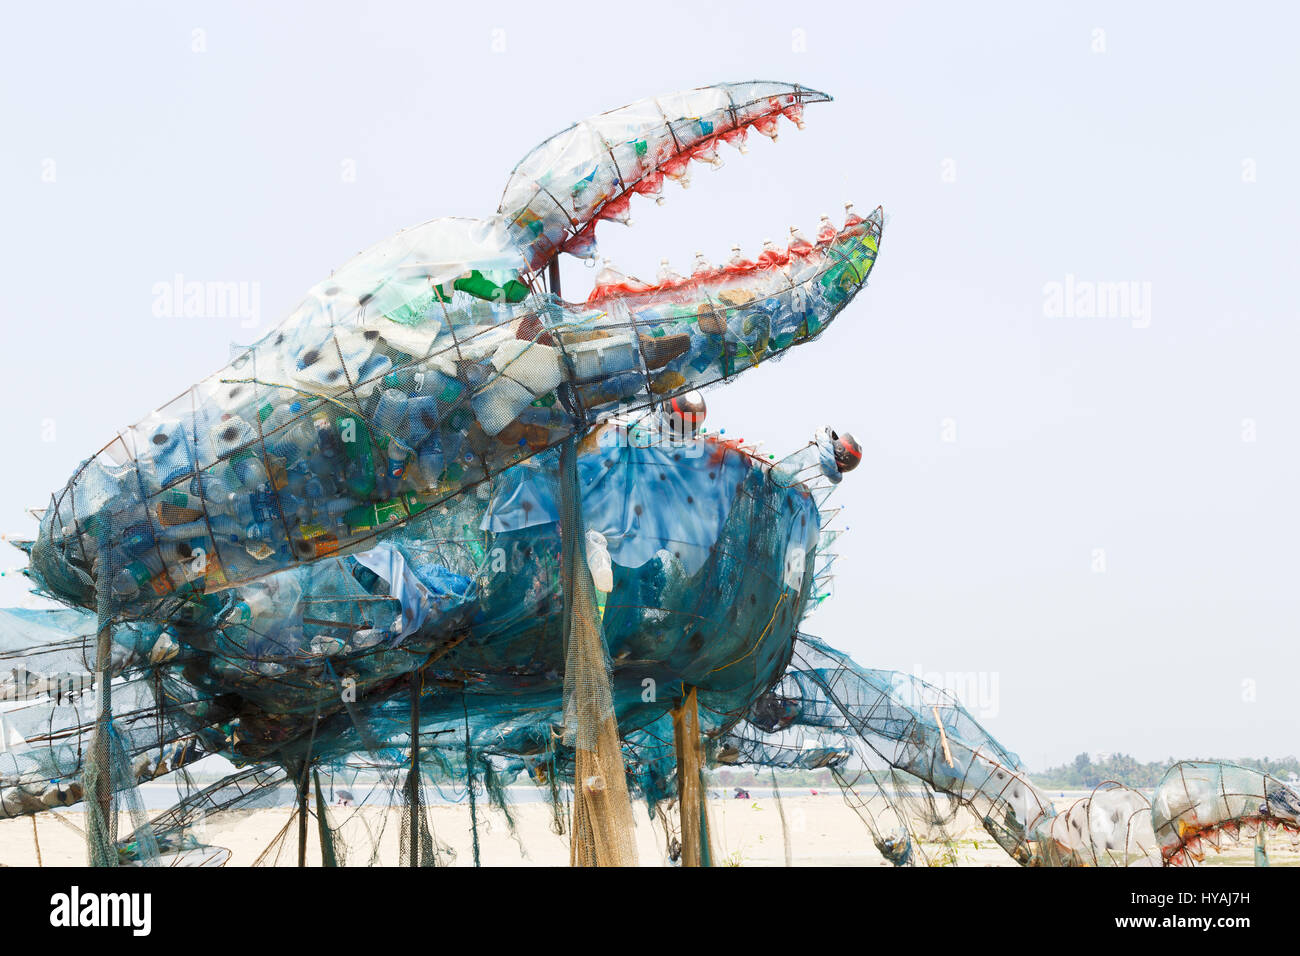 Claw of The Mad Crab, an installation or sculpture made of waste plastics to highlight environmental issues, on - Stock Image